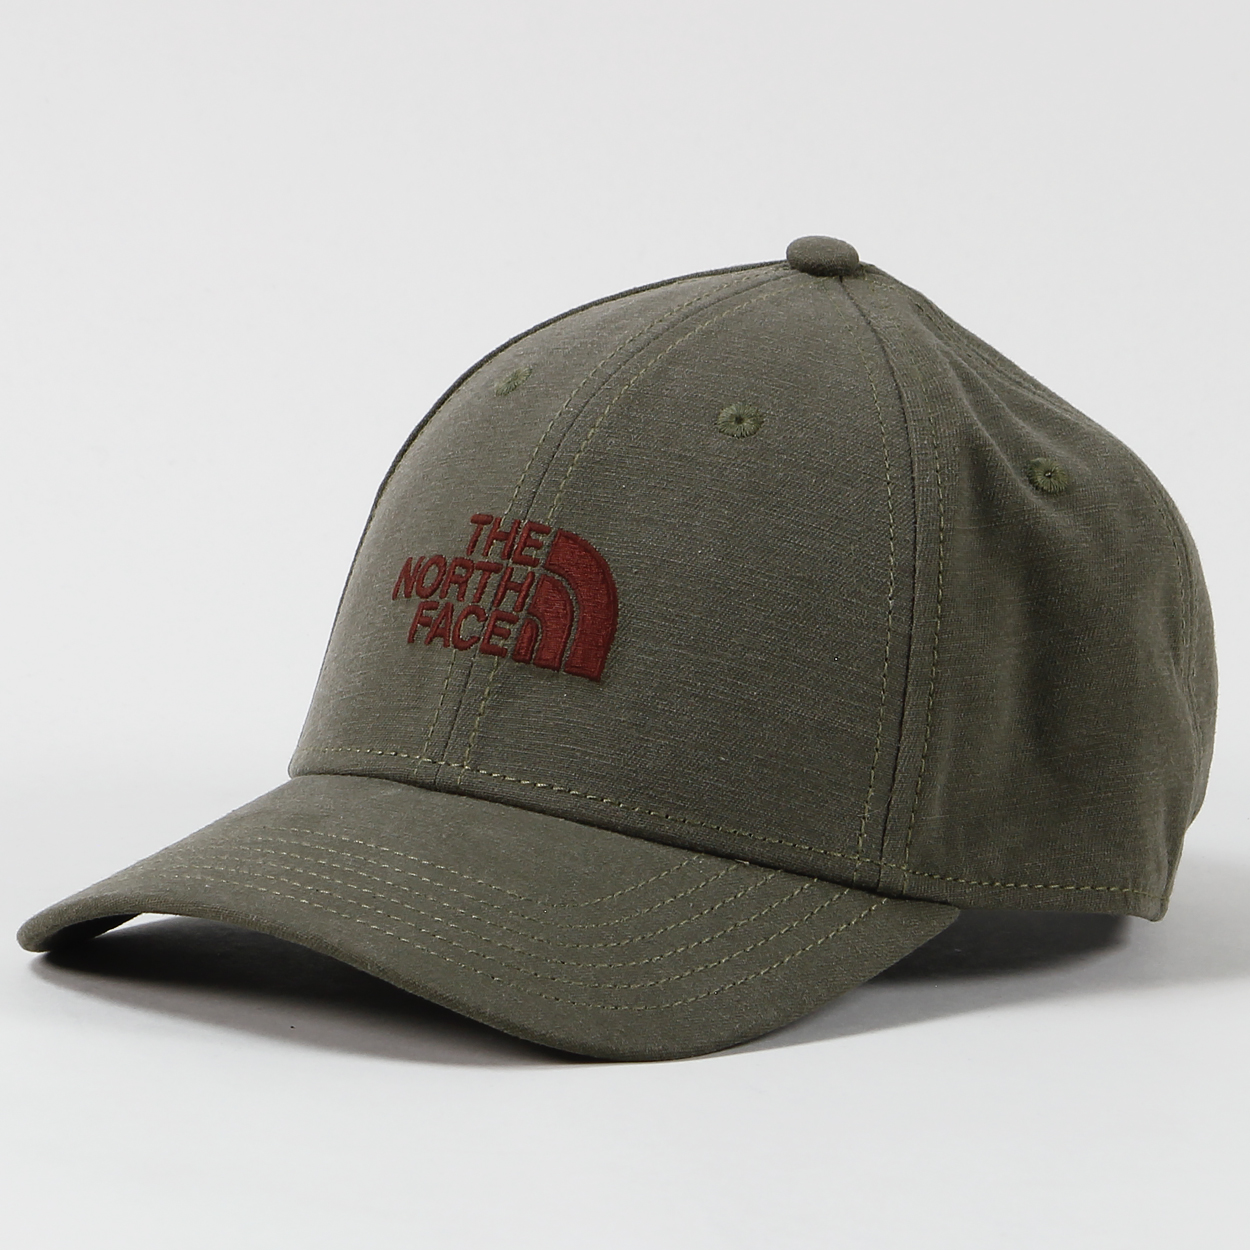 932d85c83 The North Face 66 Classic Cap Falcon Brown One Size Fits Most £8.00